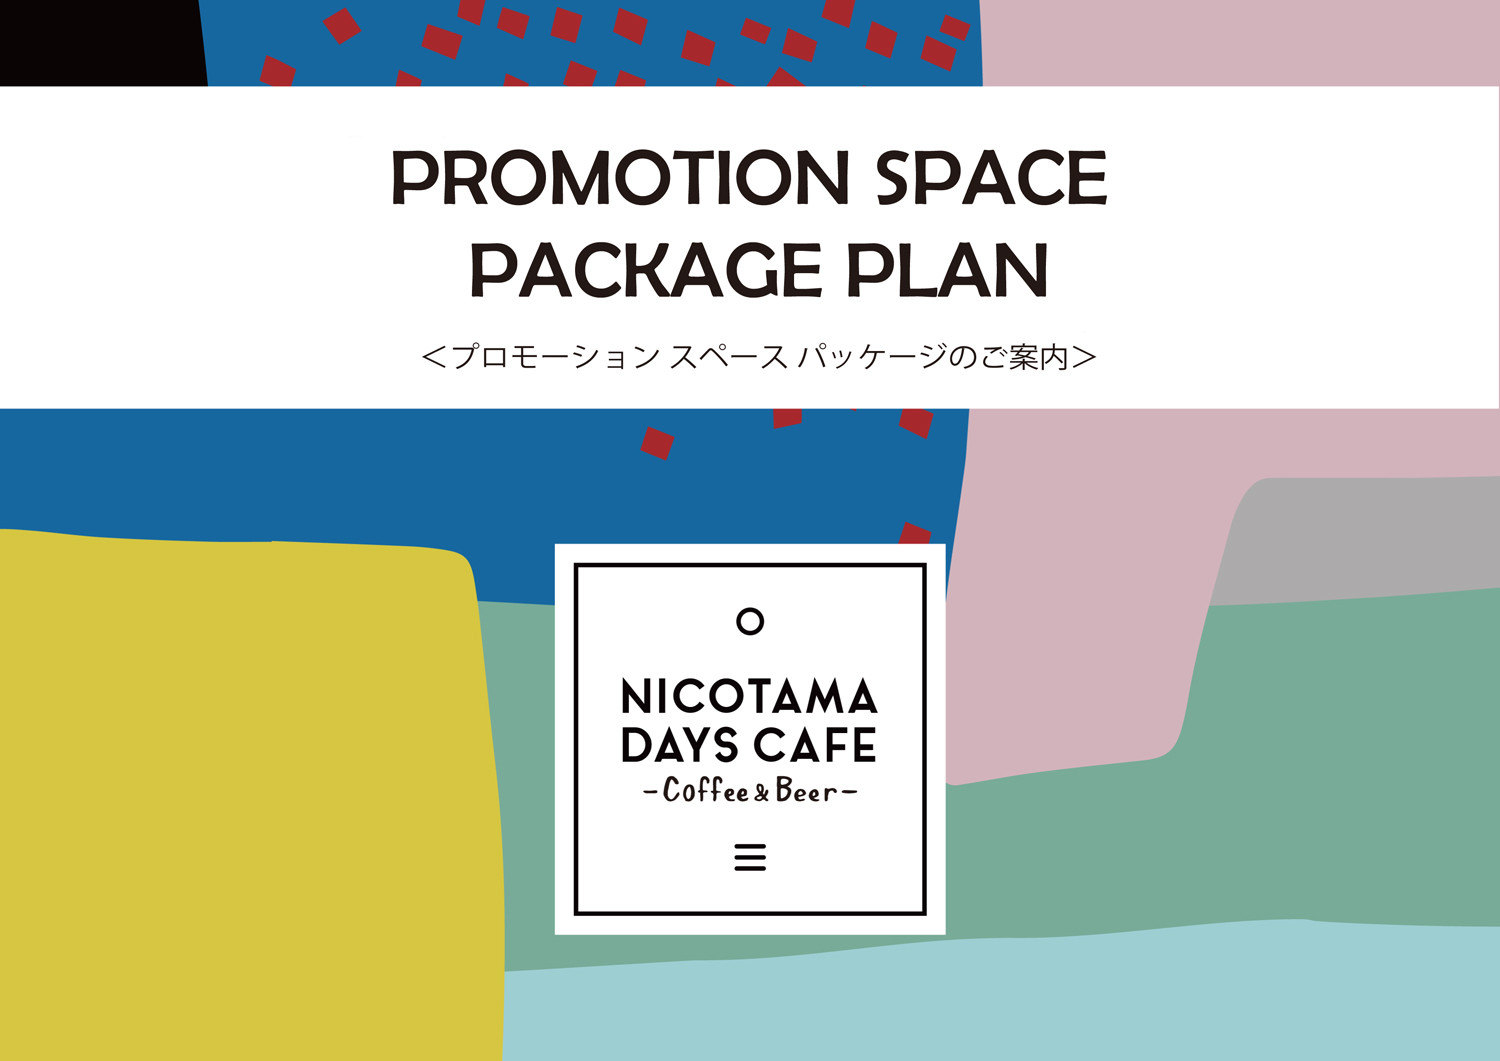 NDC-Promotion-Space-Package-Plan-1.jpg